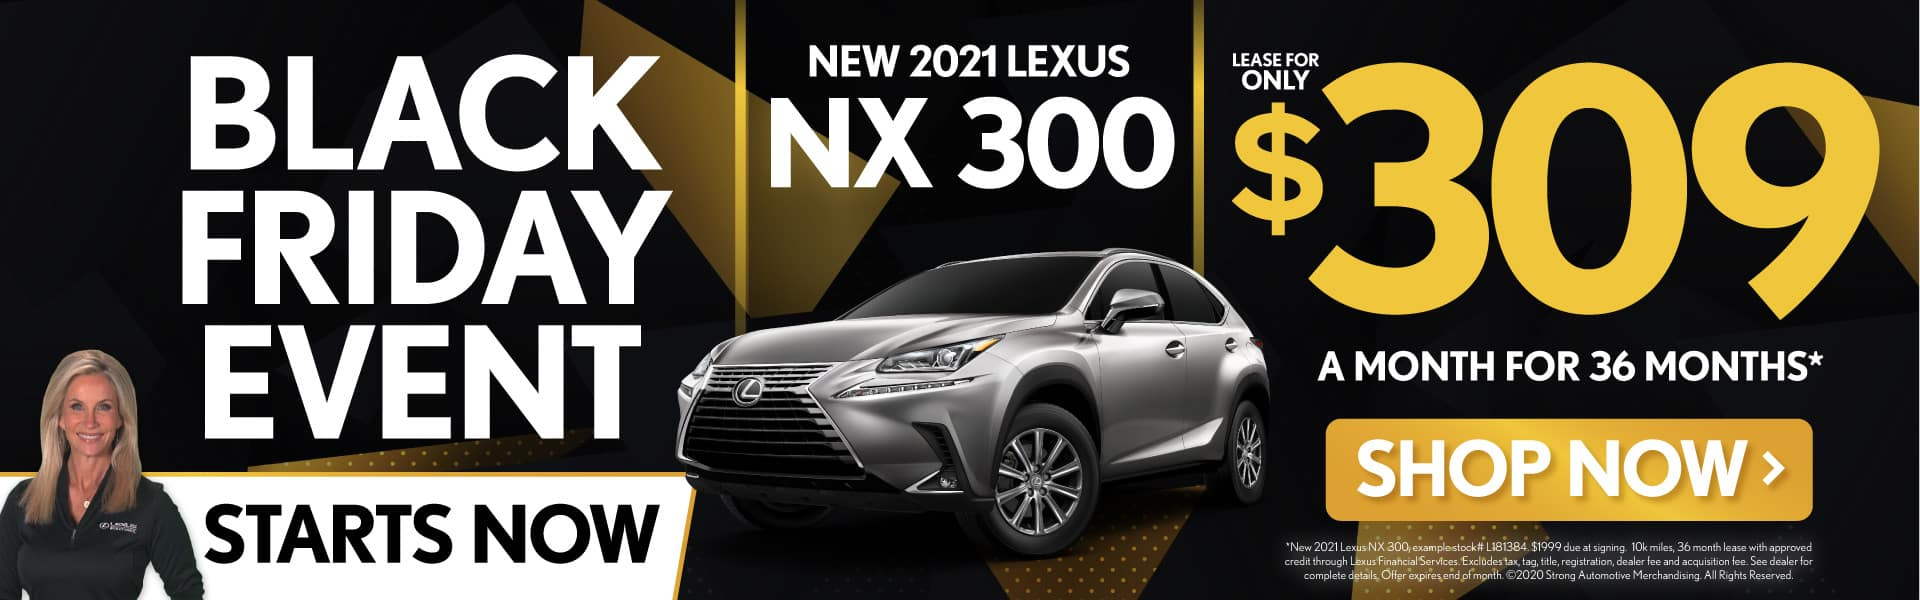 New 2021 Lexus NX 300 only $309/mo - SHOP NOW